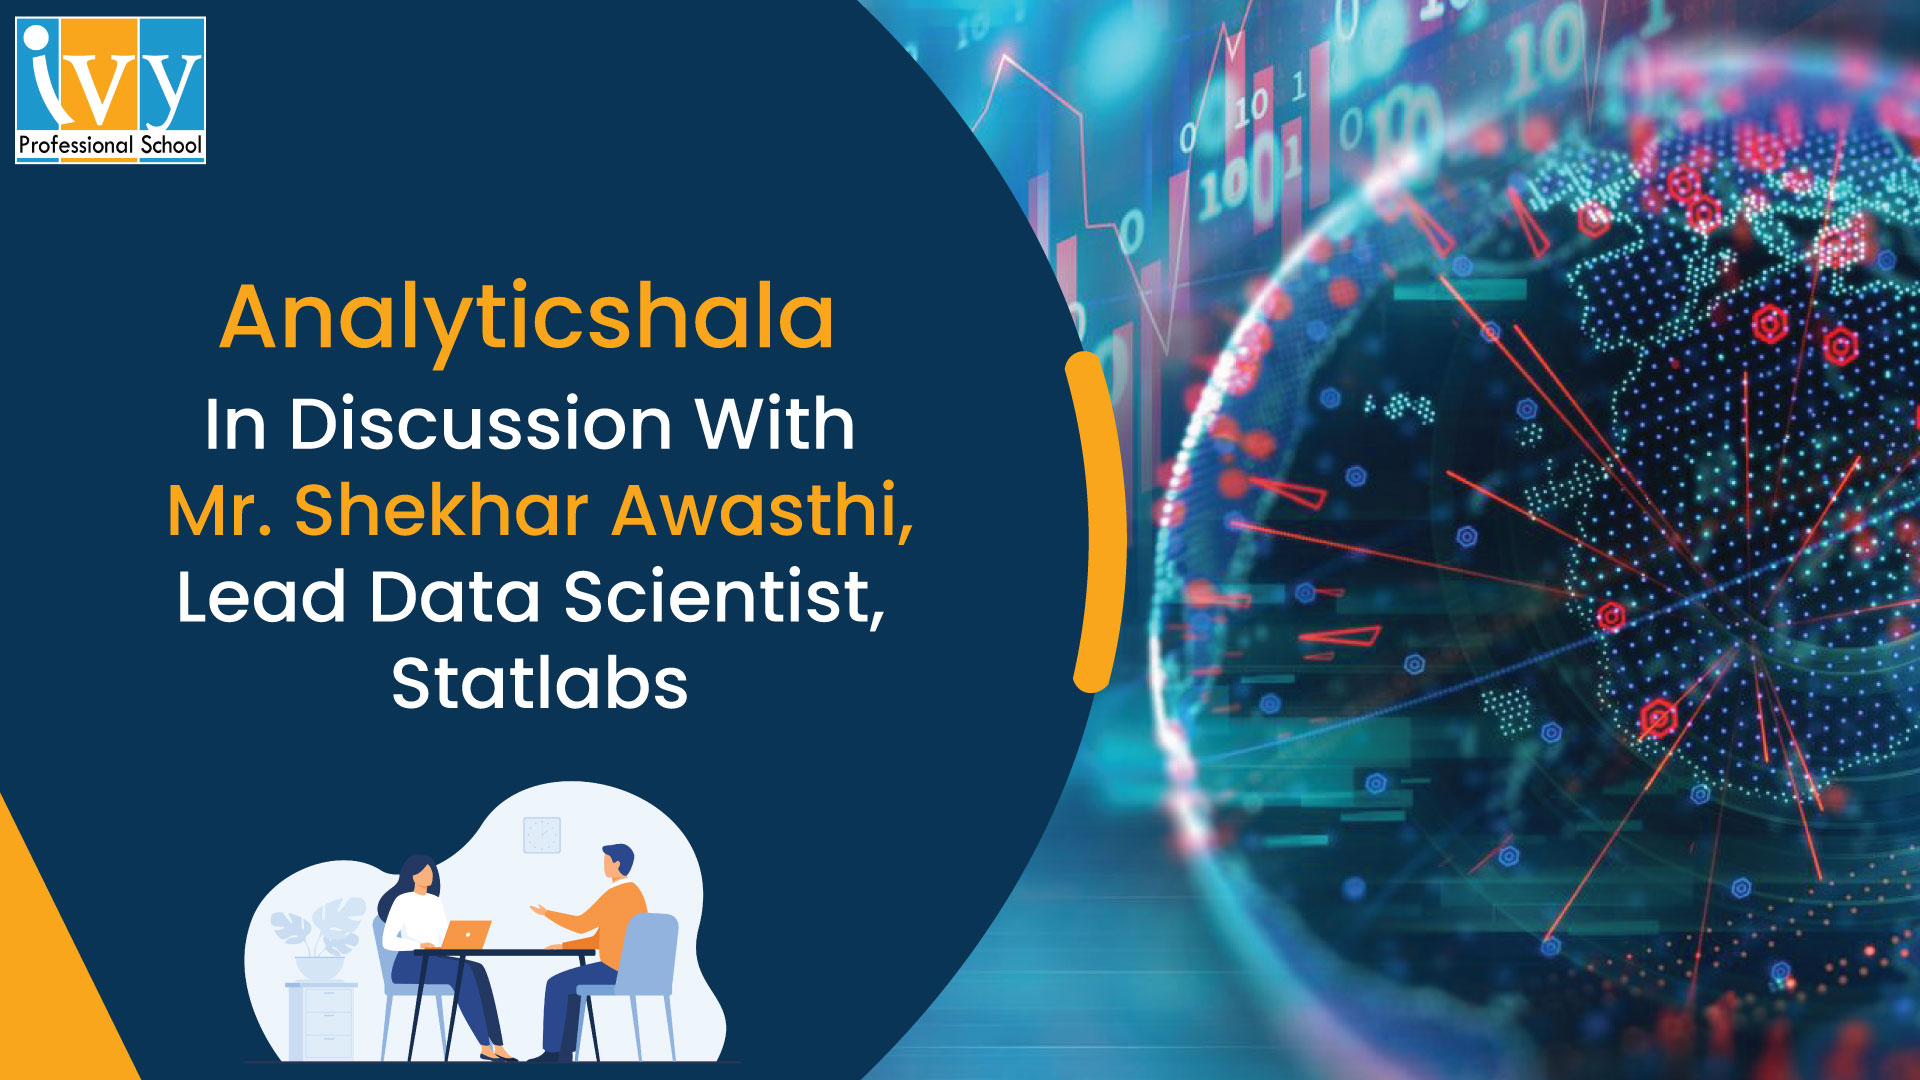 Analyticshala In discussion with Shekhar Awasthi, data scientist